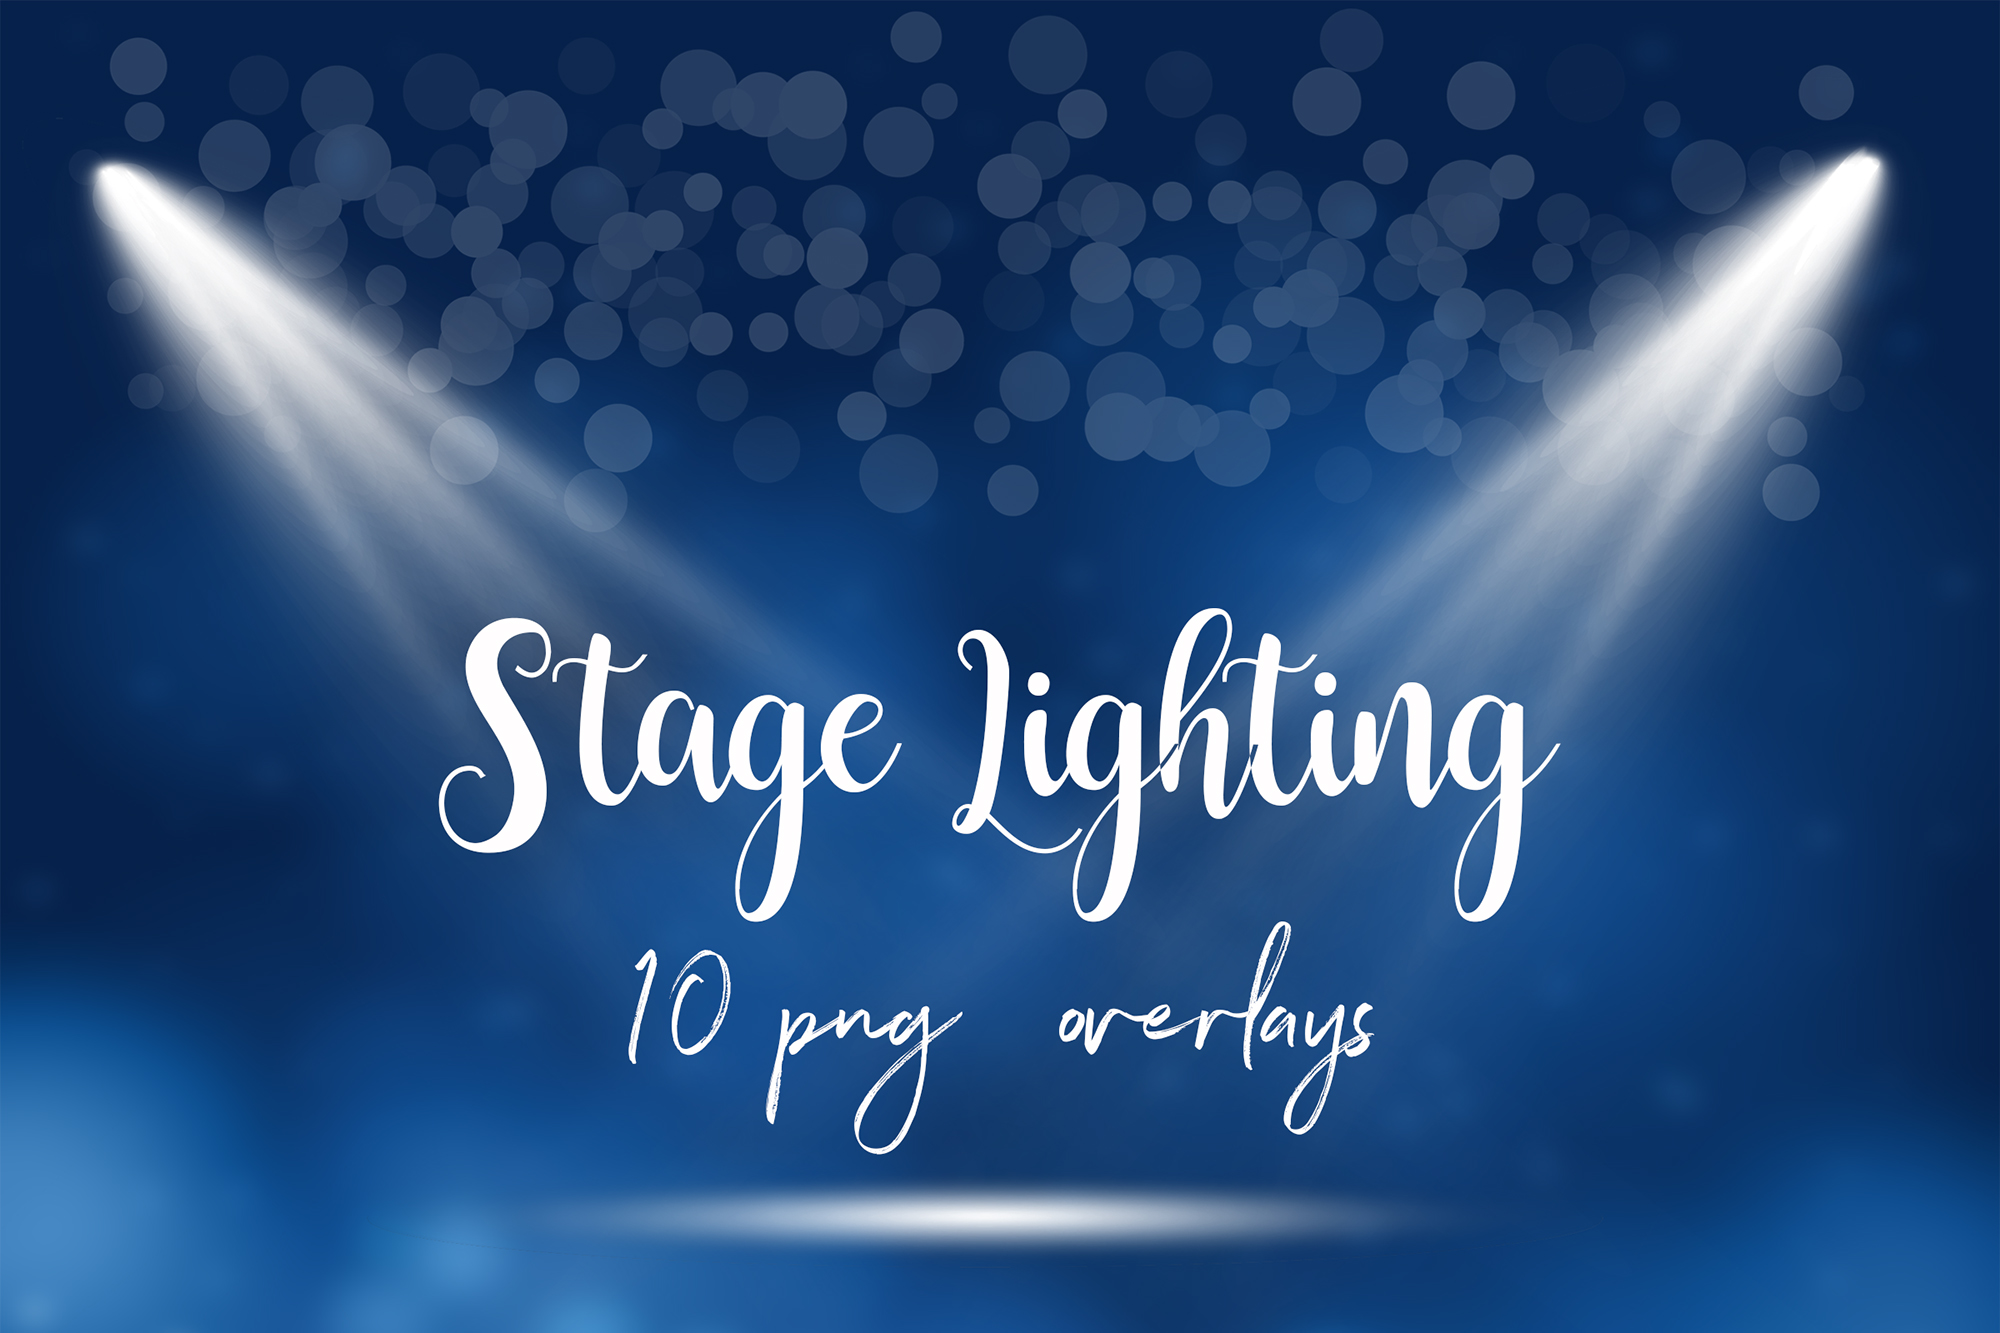 Stage Lighting Overlays, Spotlight Effects example image 1